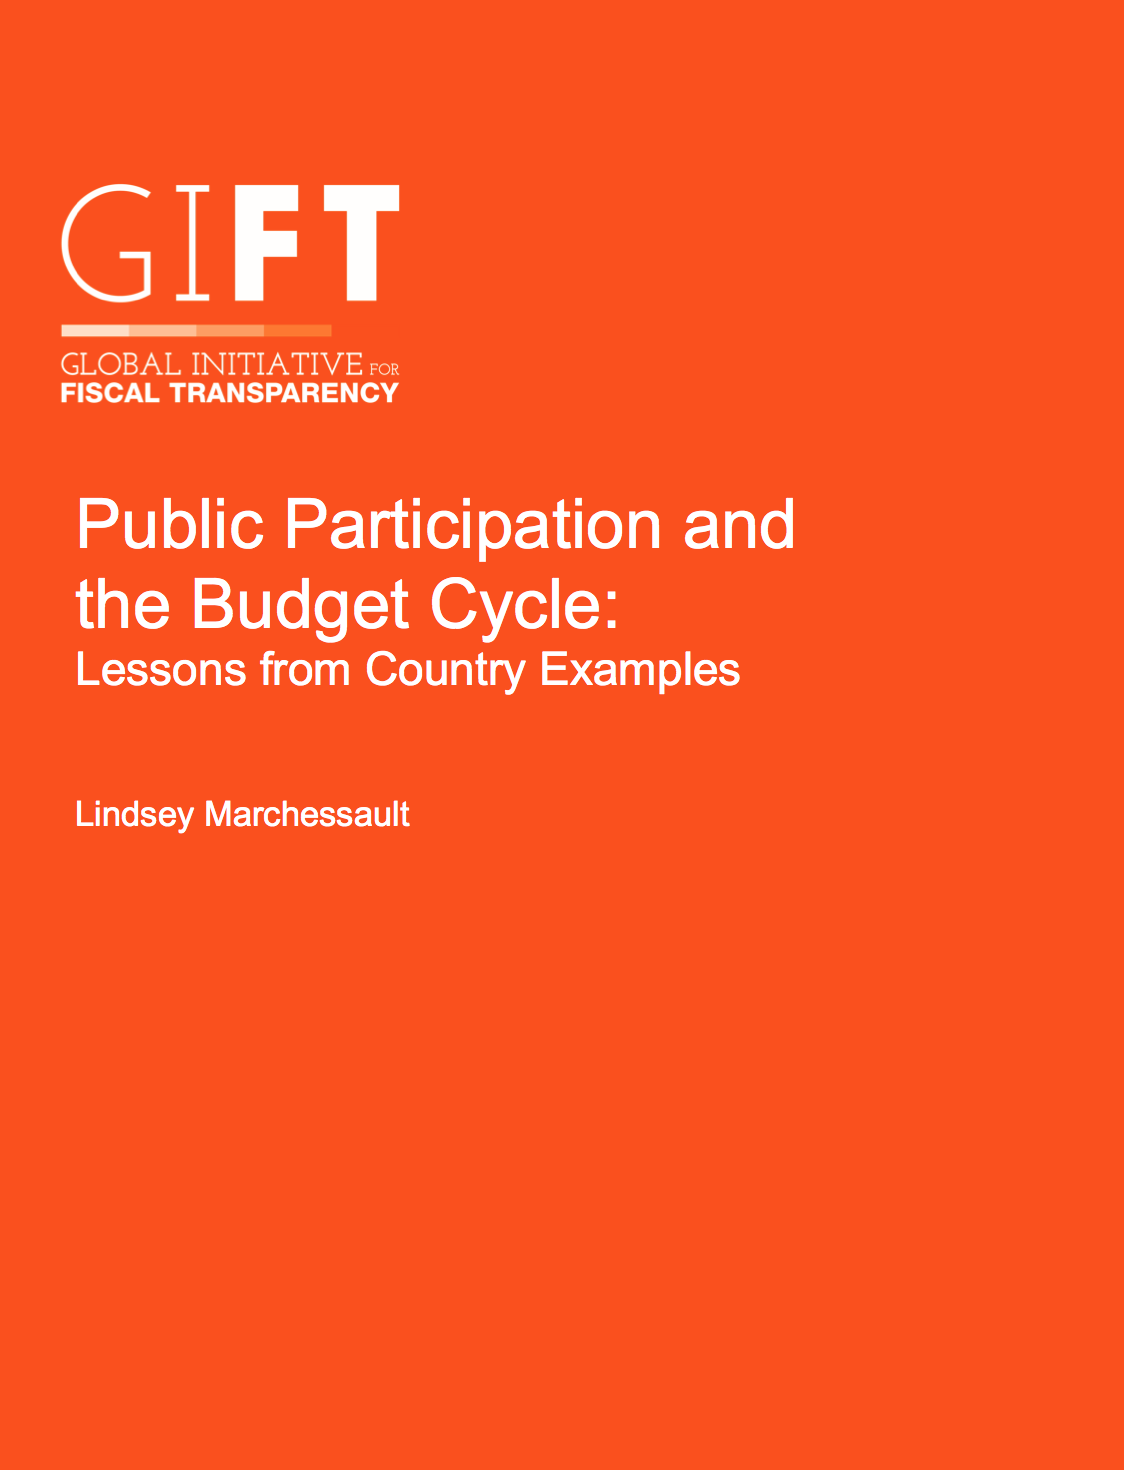 Public Participation and the Budget Cycle: Lessons from Country Examples